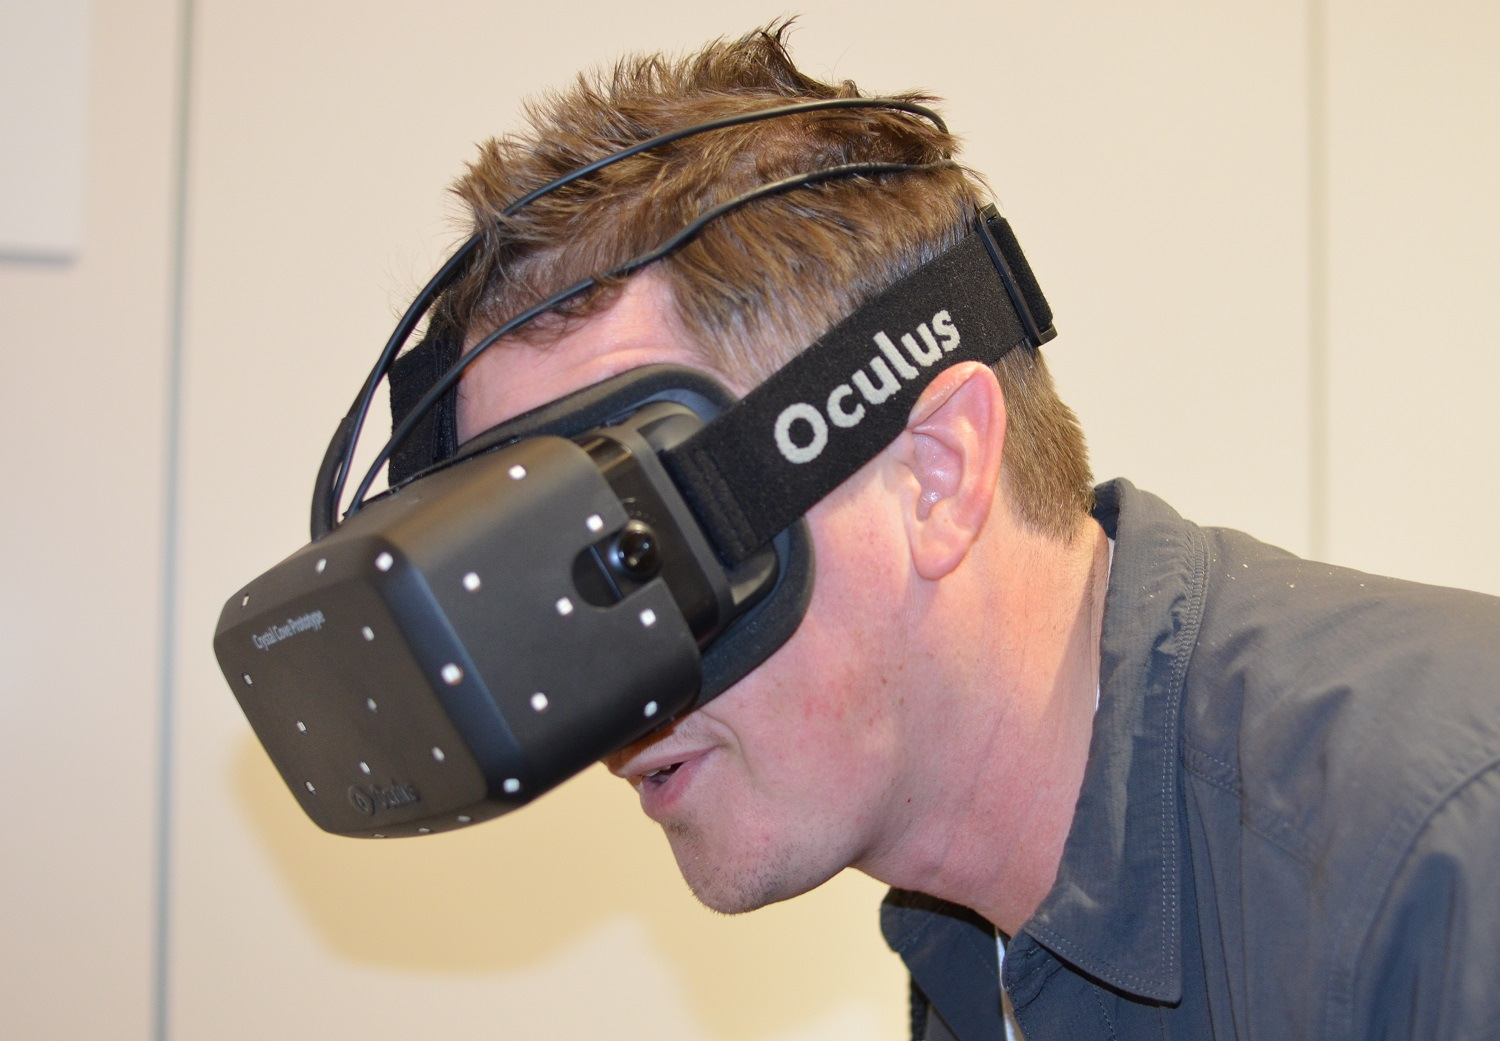 ces-2014-oculus-rift-crystal-cove-prototype-interview-palmer-luckey-nate-mitchell-low-persistence-positional-tracking